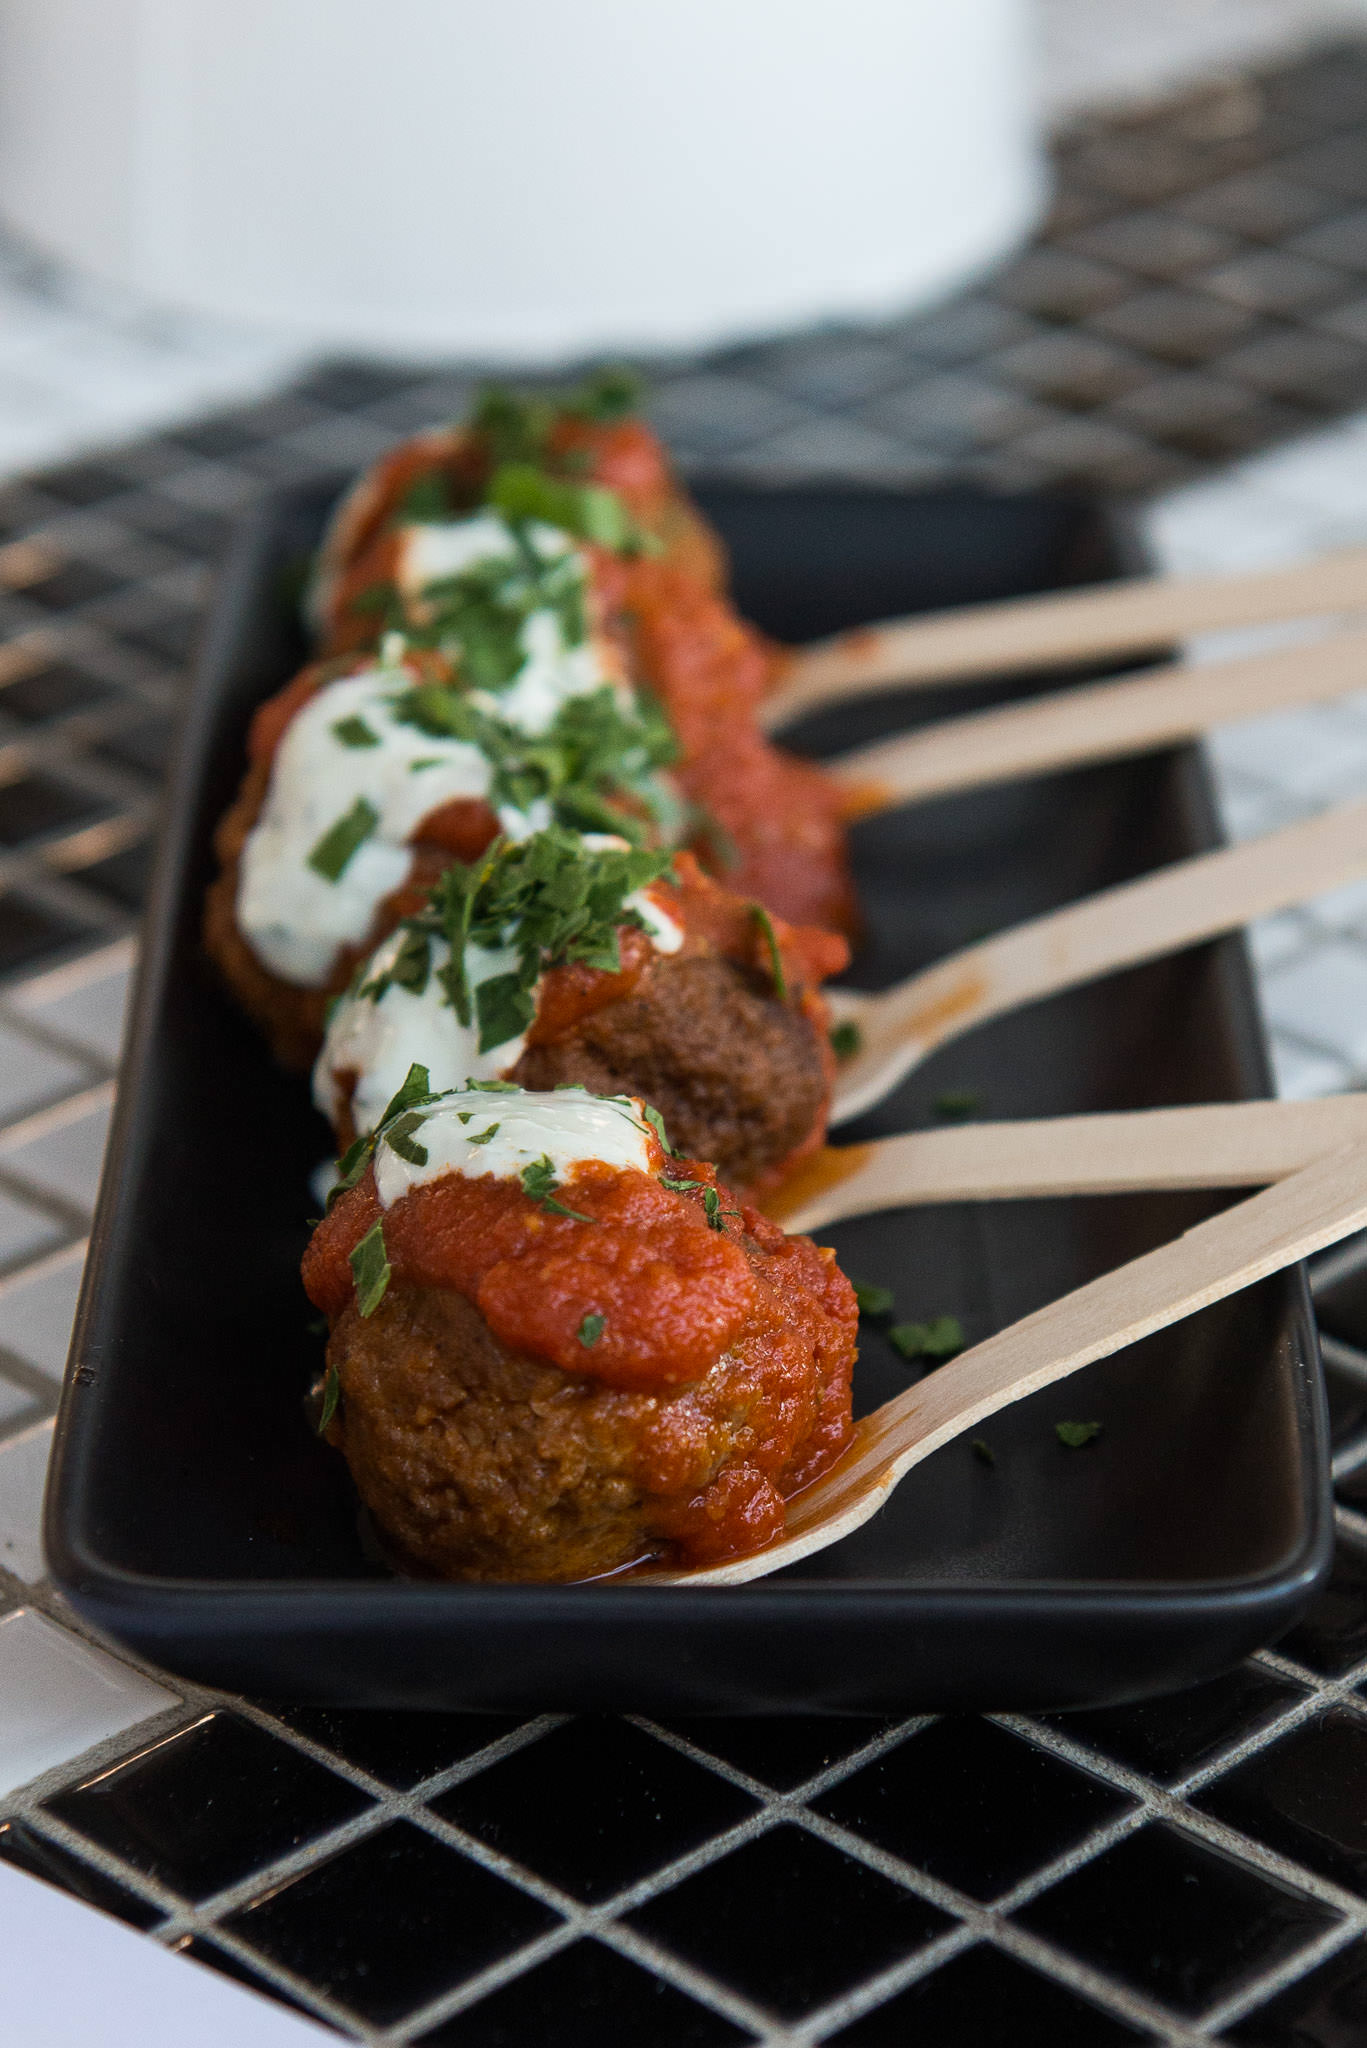 Spicy lamb meatballs with tomato sauce and yoghurt (AU$9)